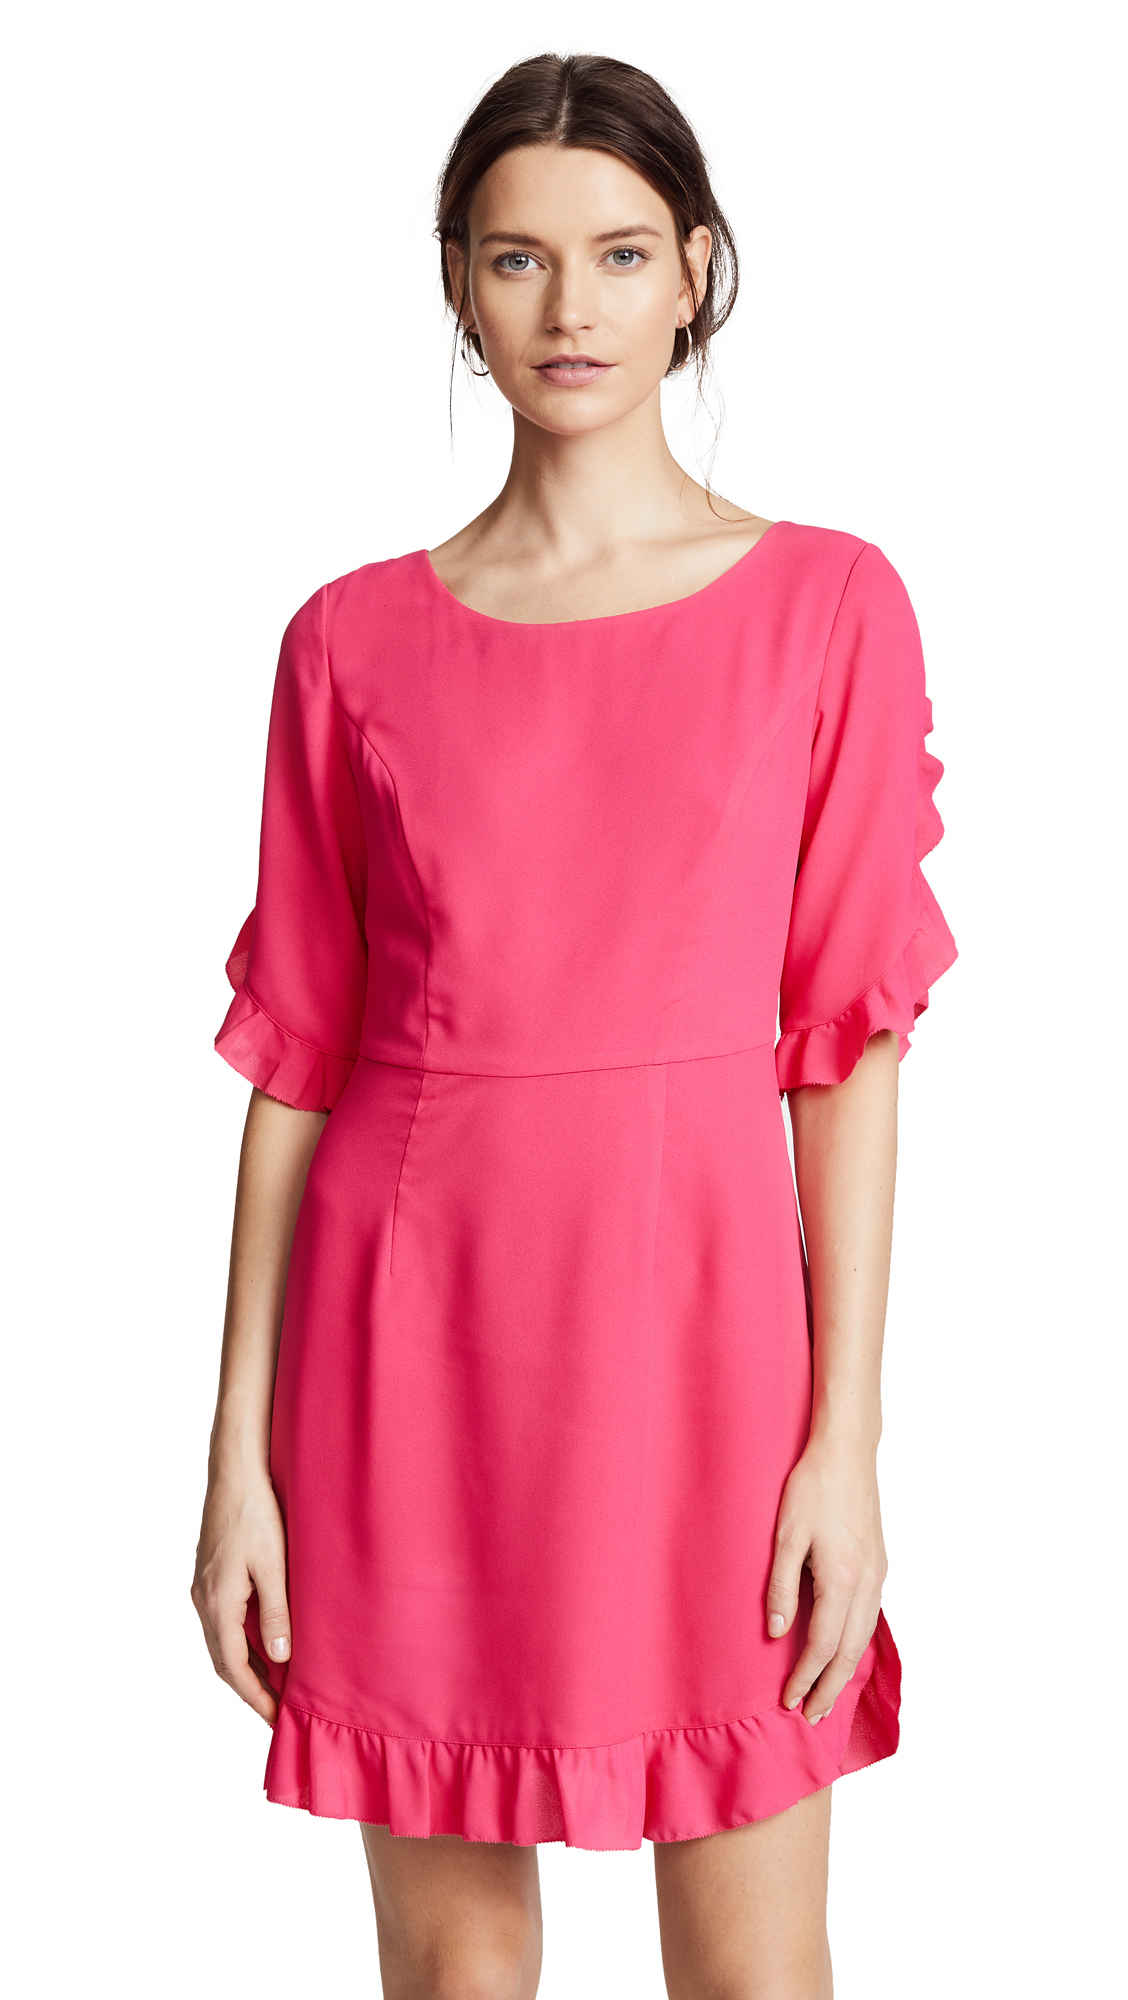 COOPER & ELLA MILOU RUFFLE DRESS